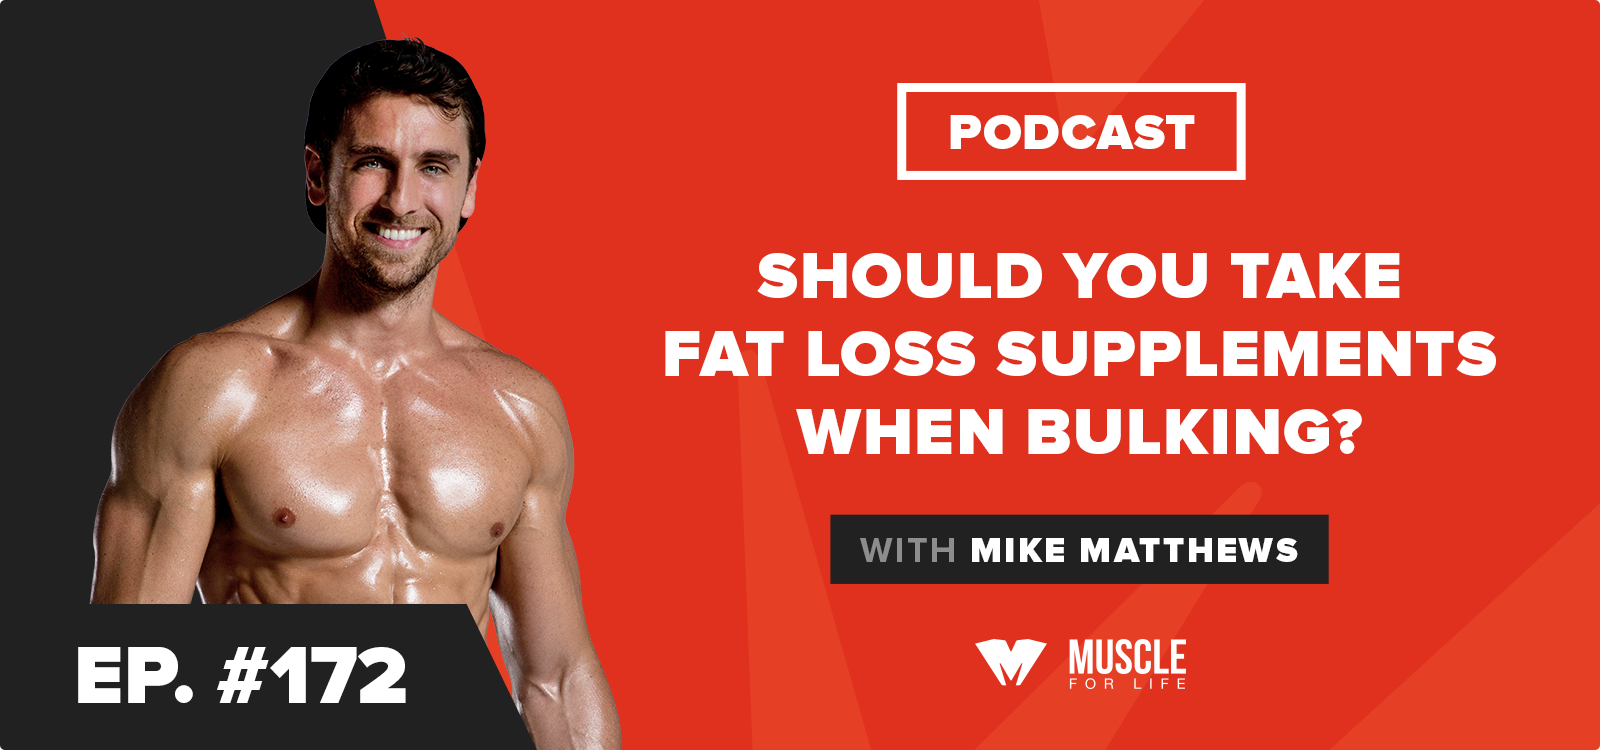 Should You Take Fat Loss Supplements When Bulking?